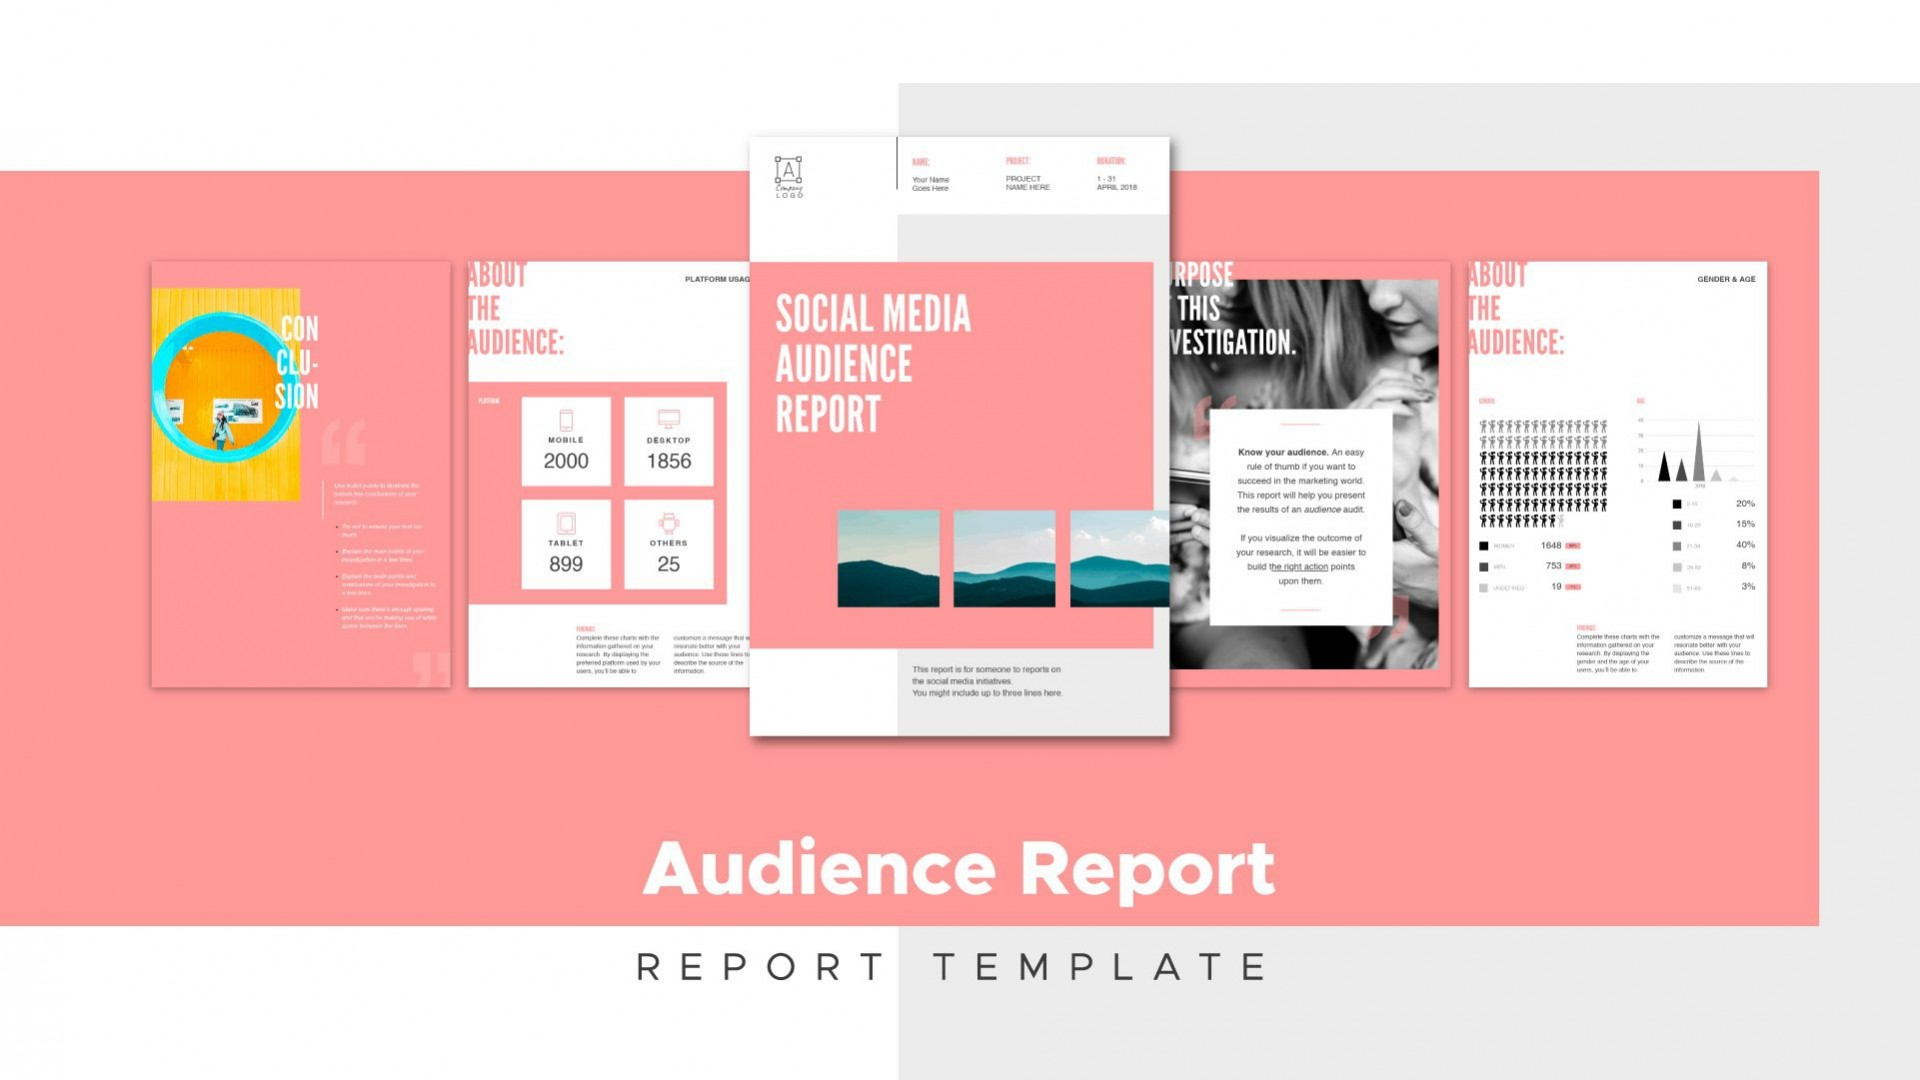 009 Top Social Media Report Template High Resolution  Powerpoint Free Download Analytic Word1920